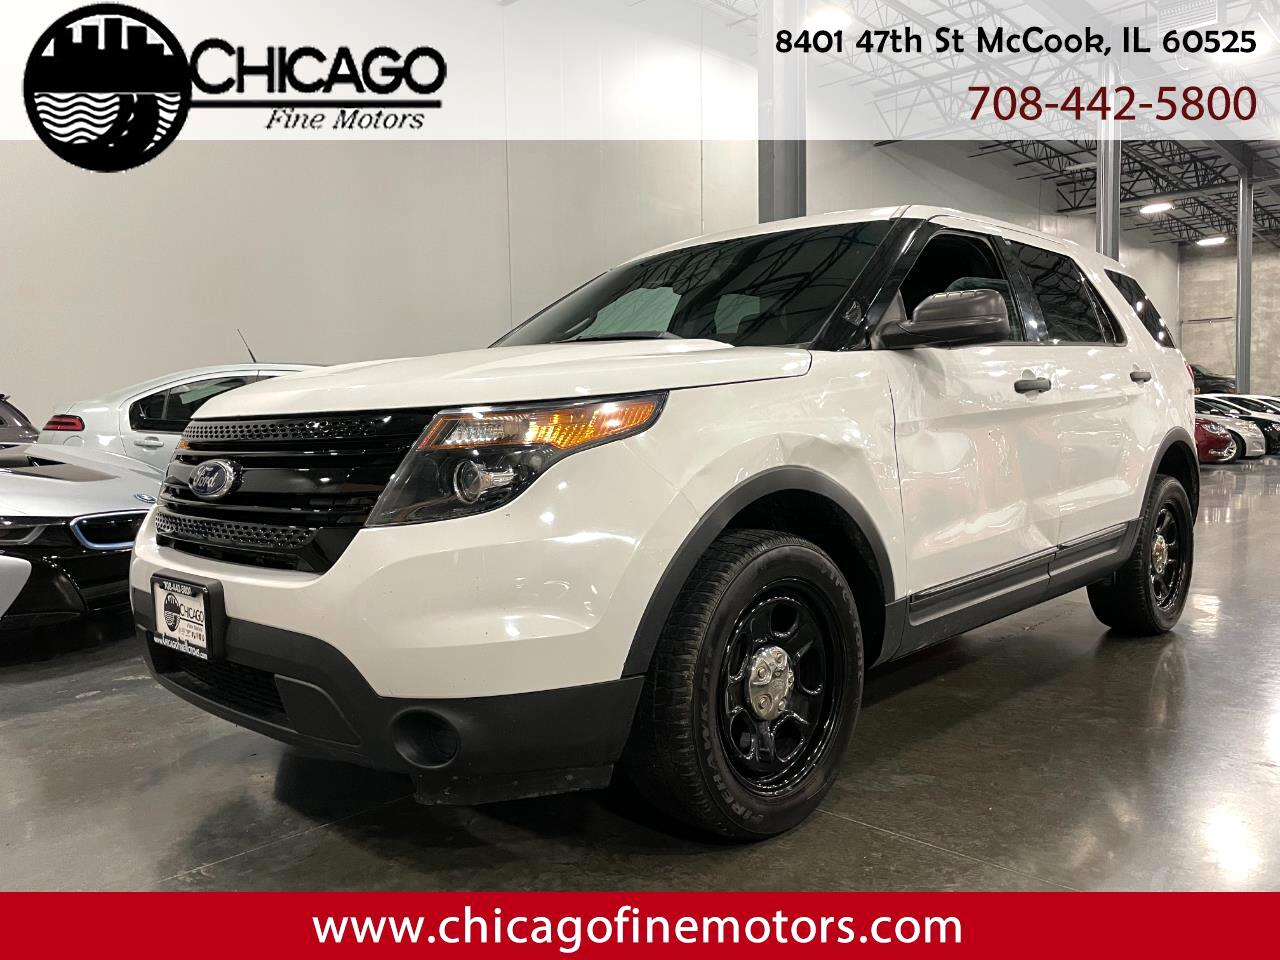 Ford Explorer Police 4WD 2015